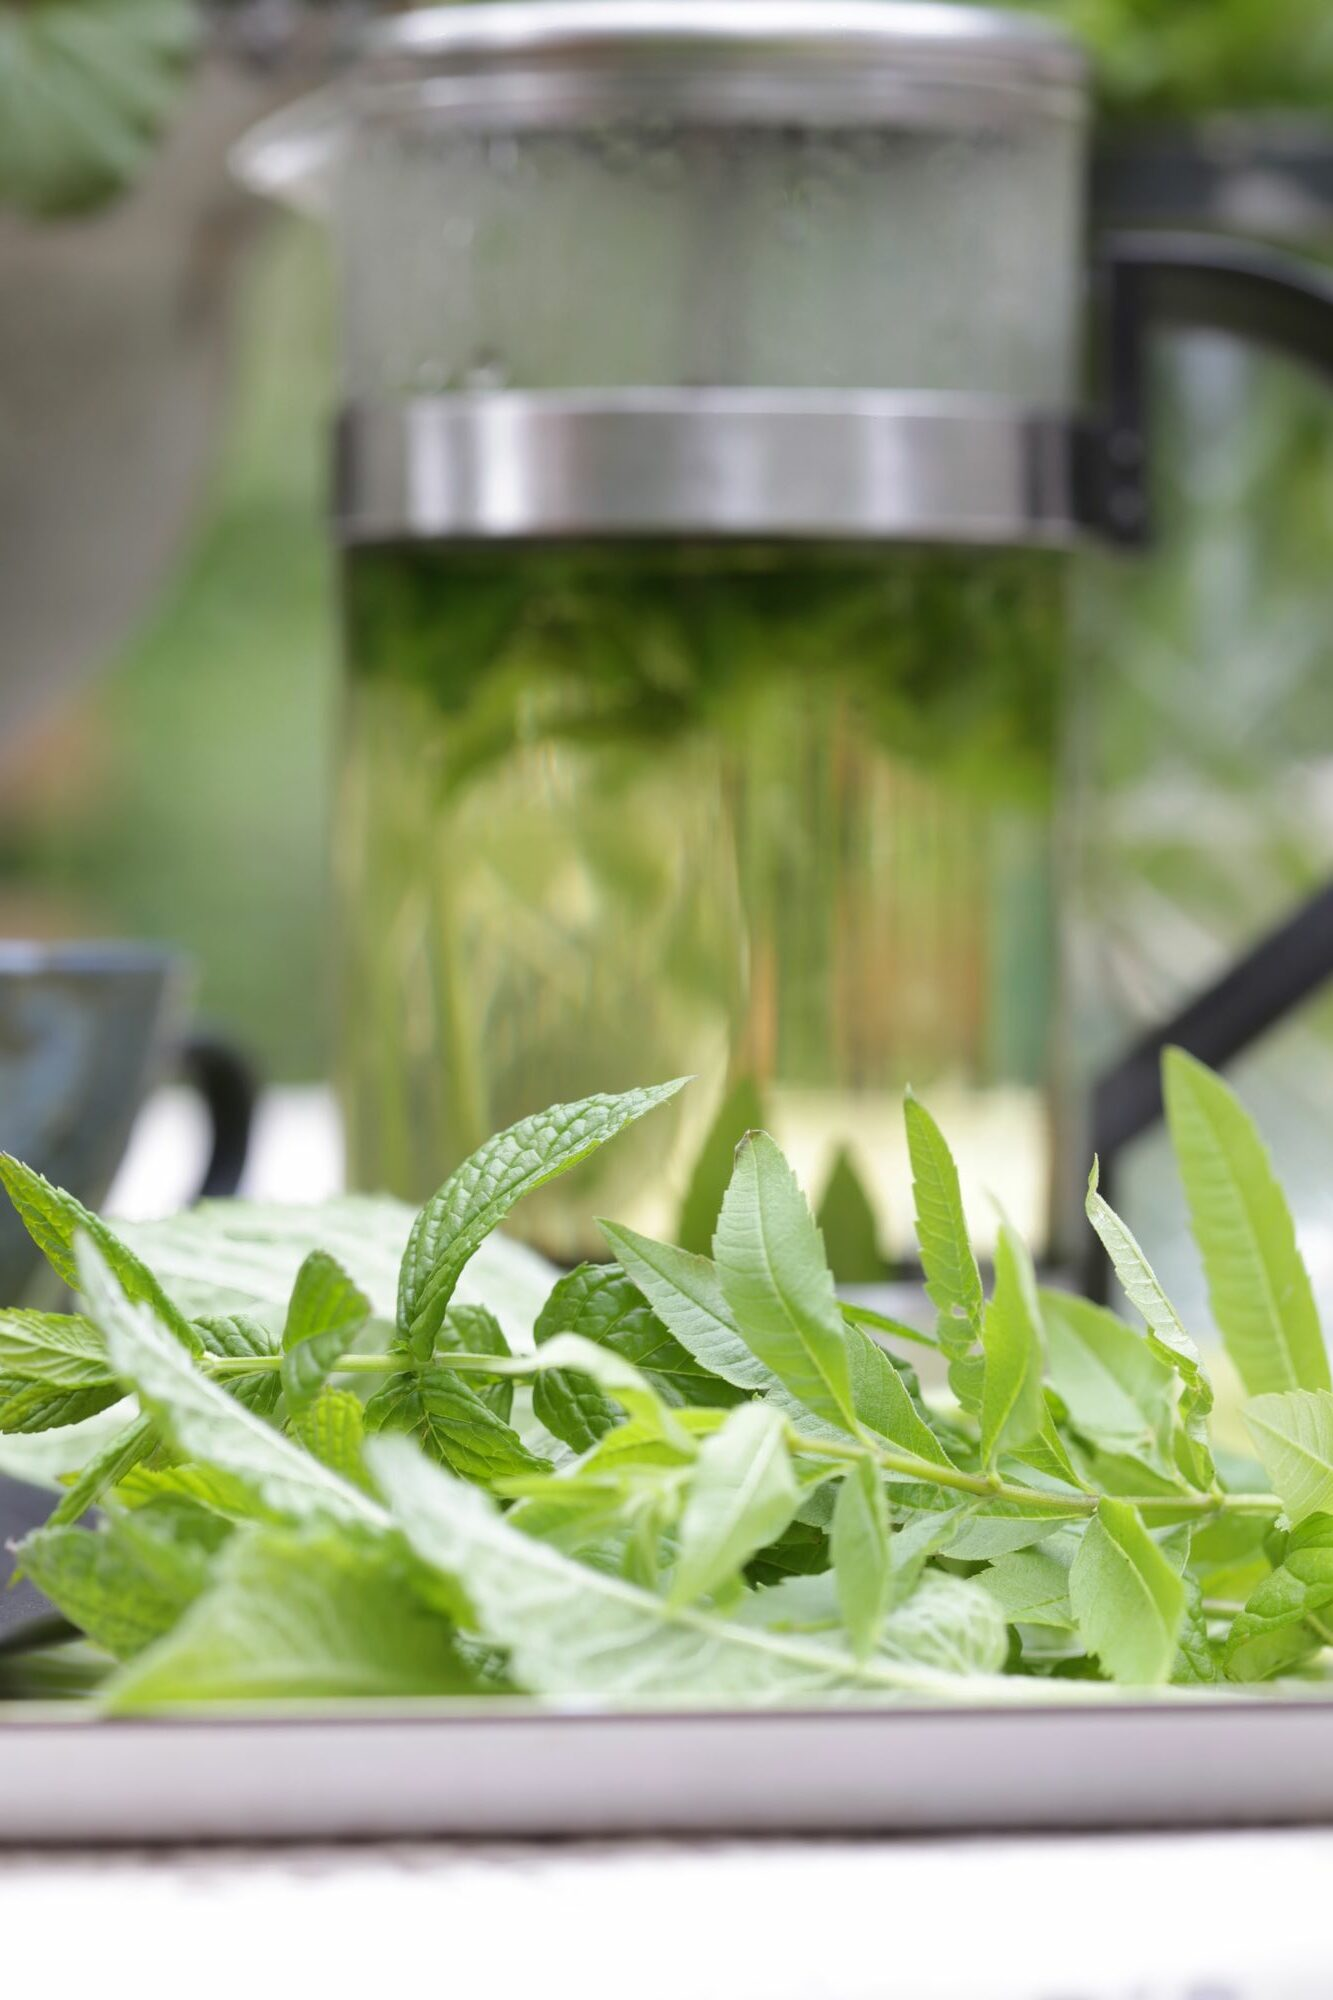 Assemble a tea blend of your favorite herbs.  Pour the almost boiling water into the teapot over the fresh herbs.  Simmer for a moment.